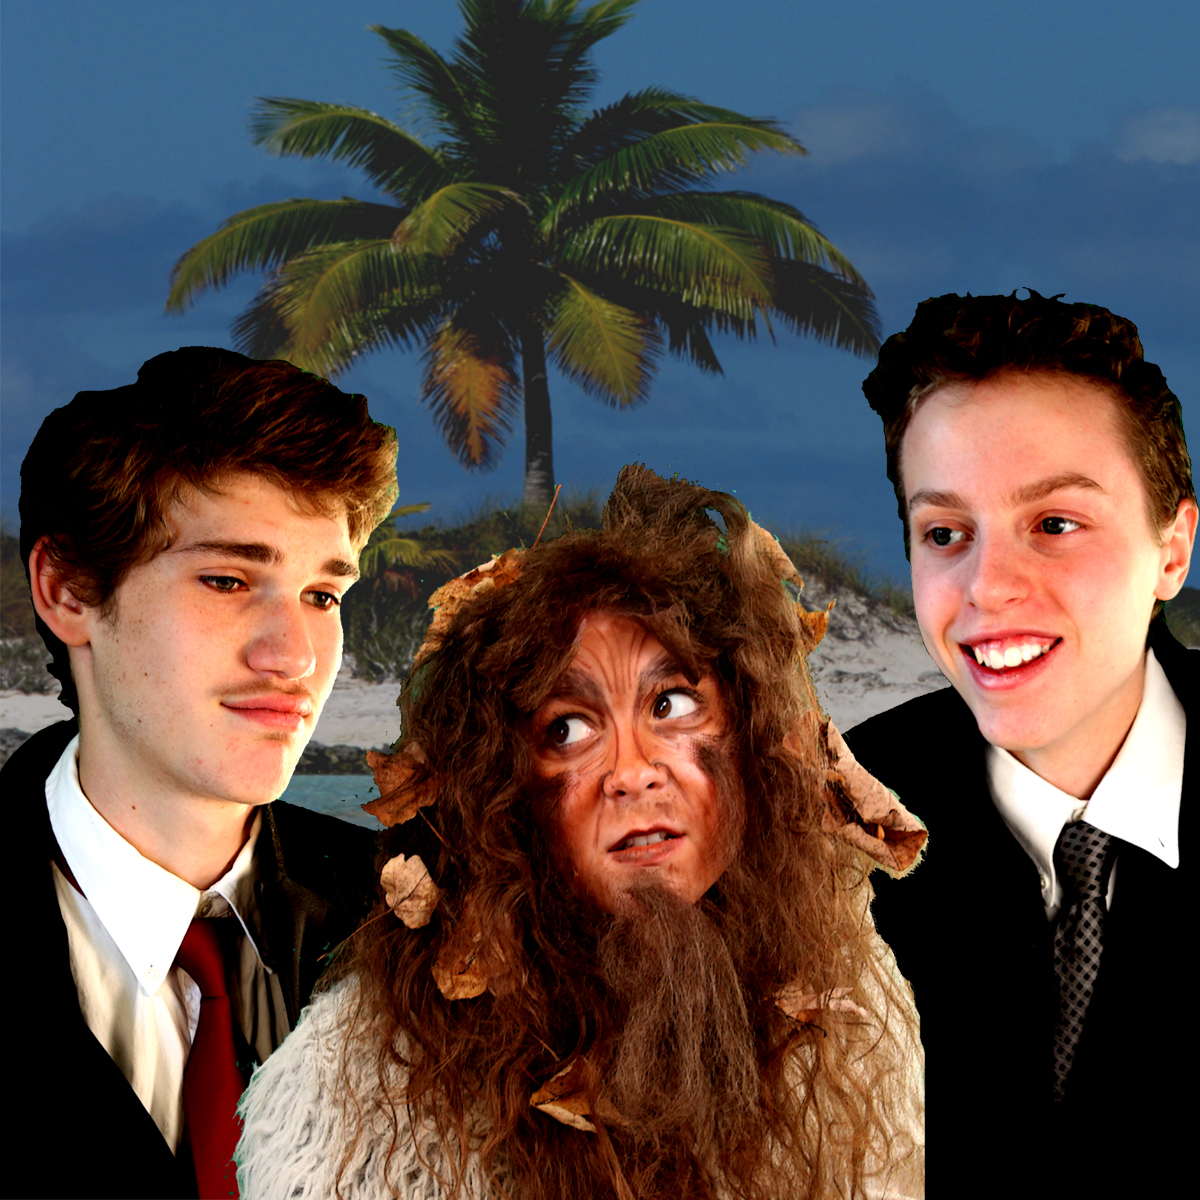 Robert Willard as Stephano, Anna Dempf as Caliban, and Ari Miller as Trinculo